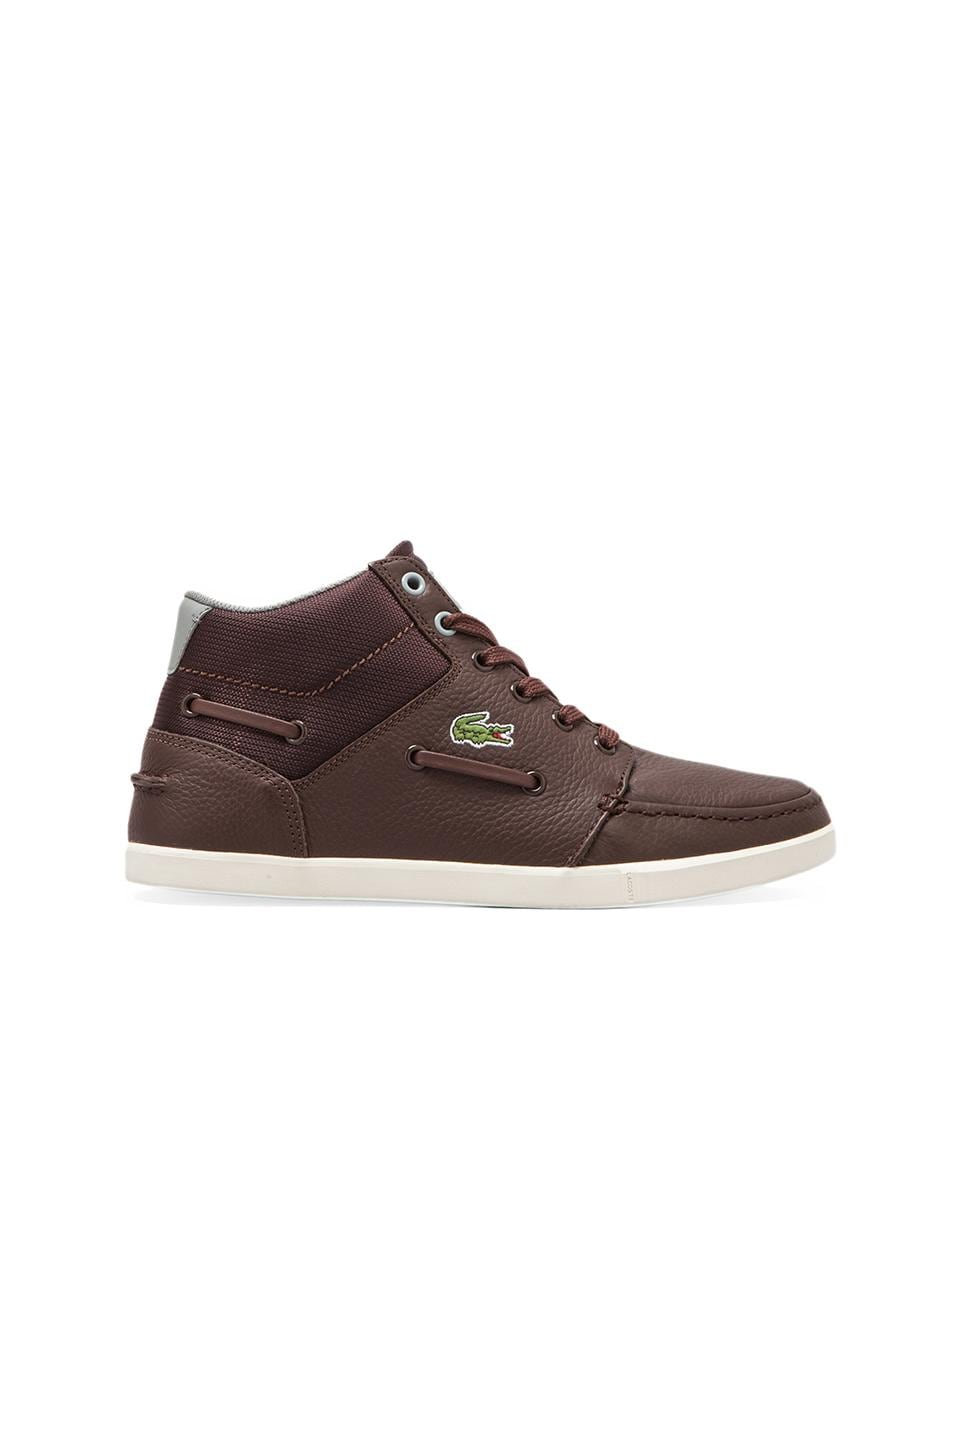 Lacoste LIVE Crosier Sail Mid in Dark Brown/Dark Grey